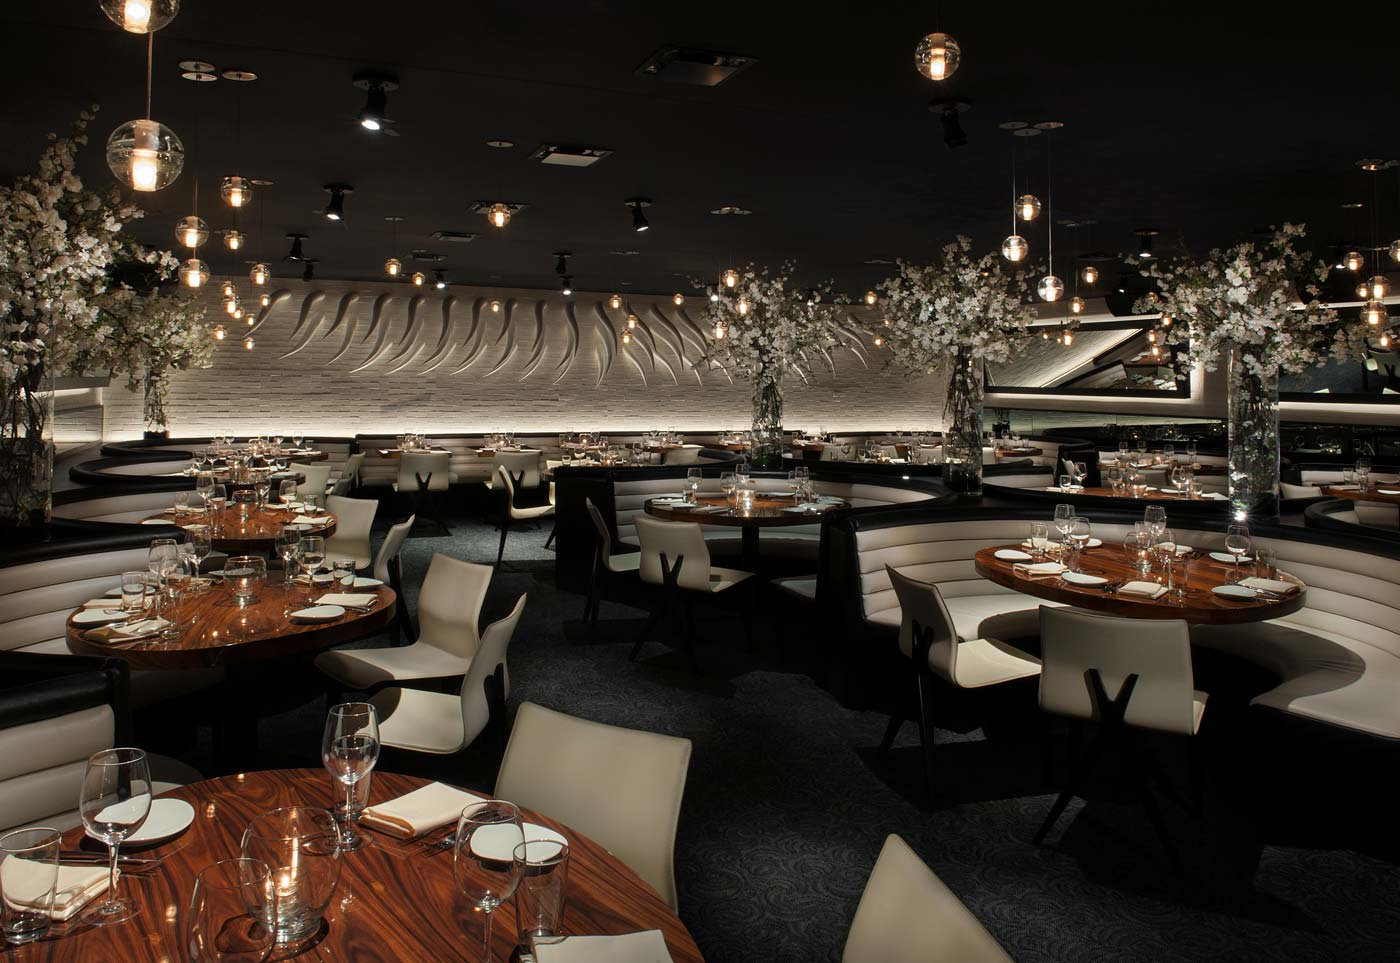 Stk Orlando Steakhouse Seafood Drinks